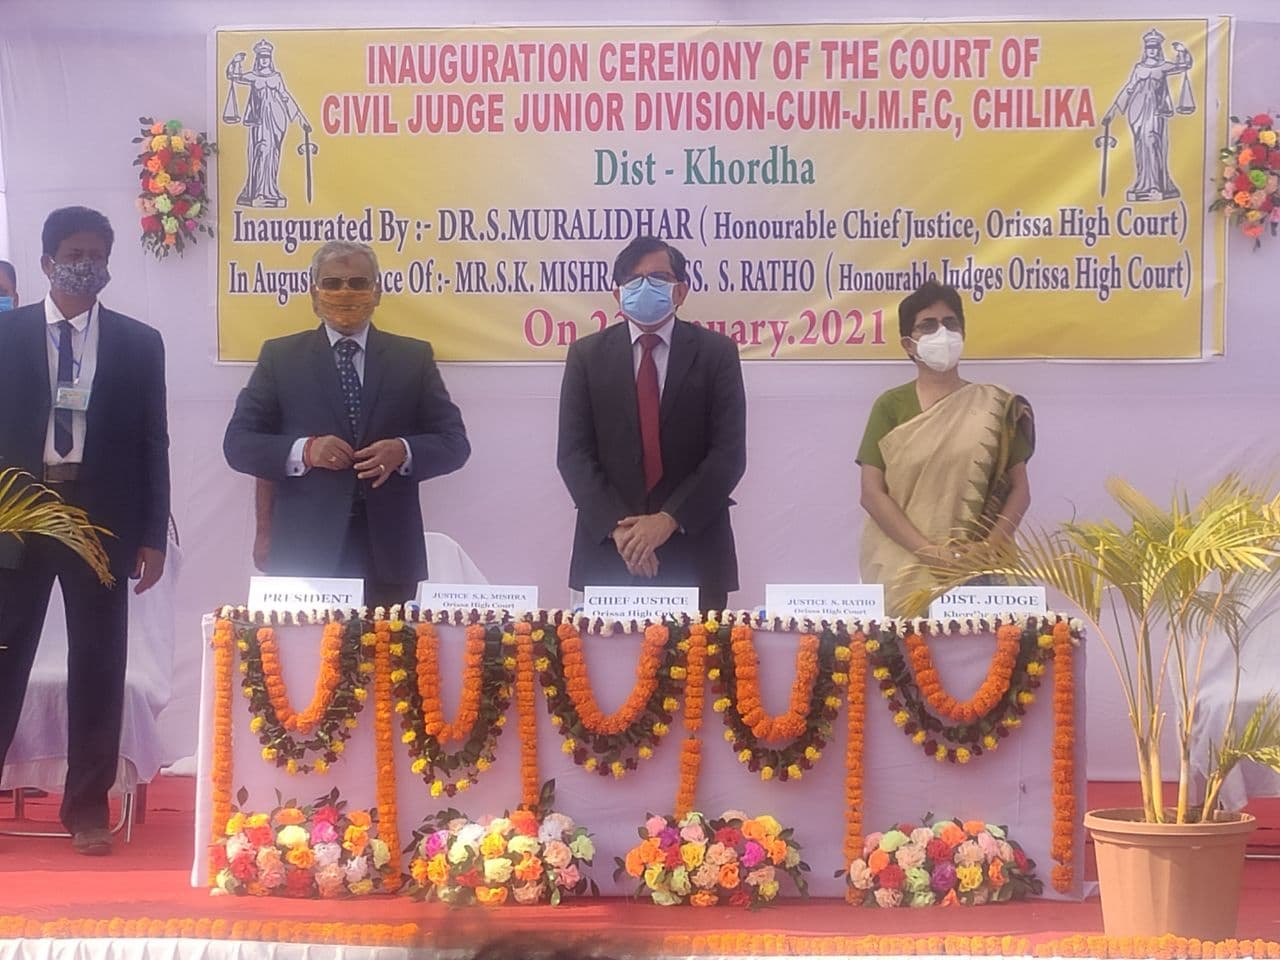 Odisha: Civil Judge Jr Division cum JMFC Court inaugurated in Chilika kalingatv.com EID MUBARAK 2020: BEST WISHES, MESSAGES & SHAYARIS TO SHARE WITH YOUR LOVED ONE ... PHOTO GALLERY  | I.PINIMG.COM  #EDUCRATSWEB 2020-05-23 i.pinimg.com https://i.pinimg.com/236x/4b/5e/44/4b5e44285c88e809d9ba33468574be1d.jpg